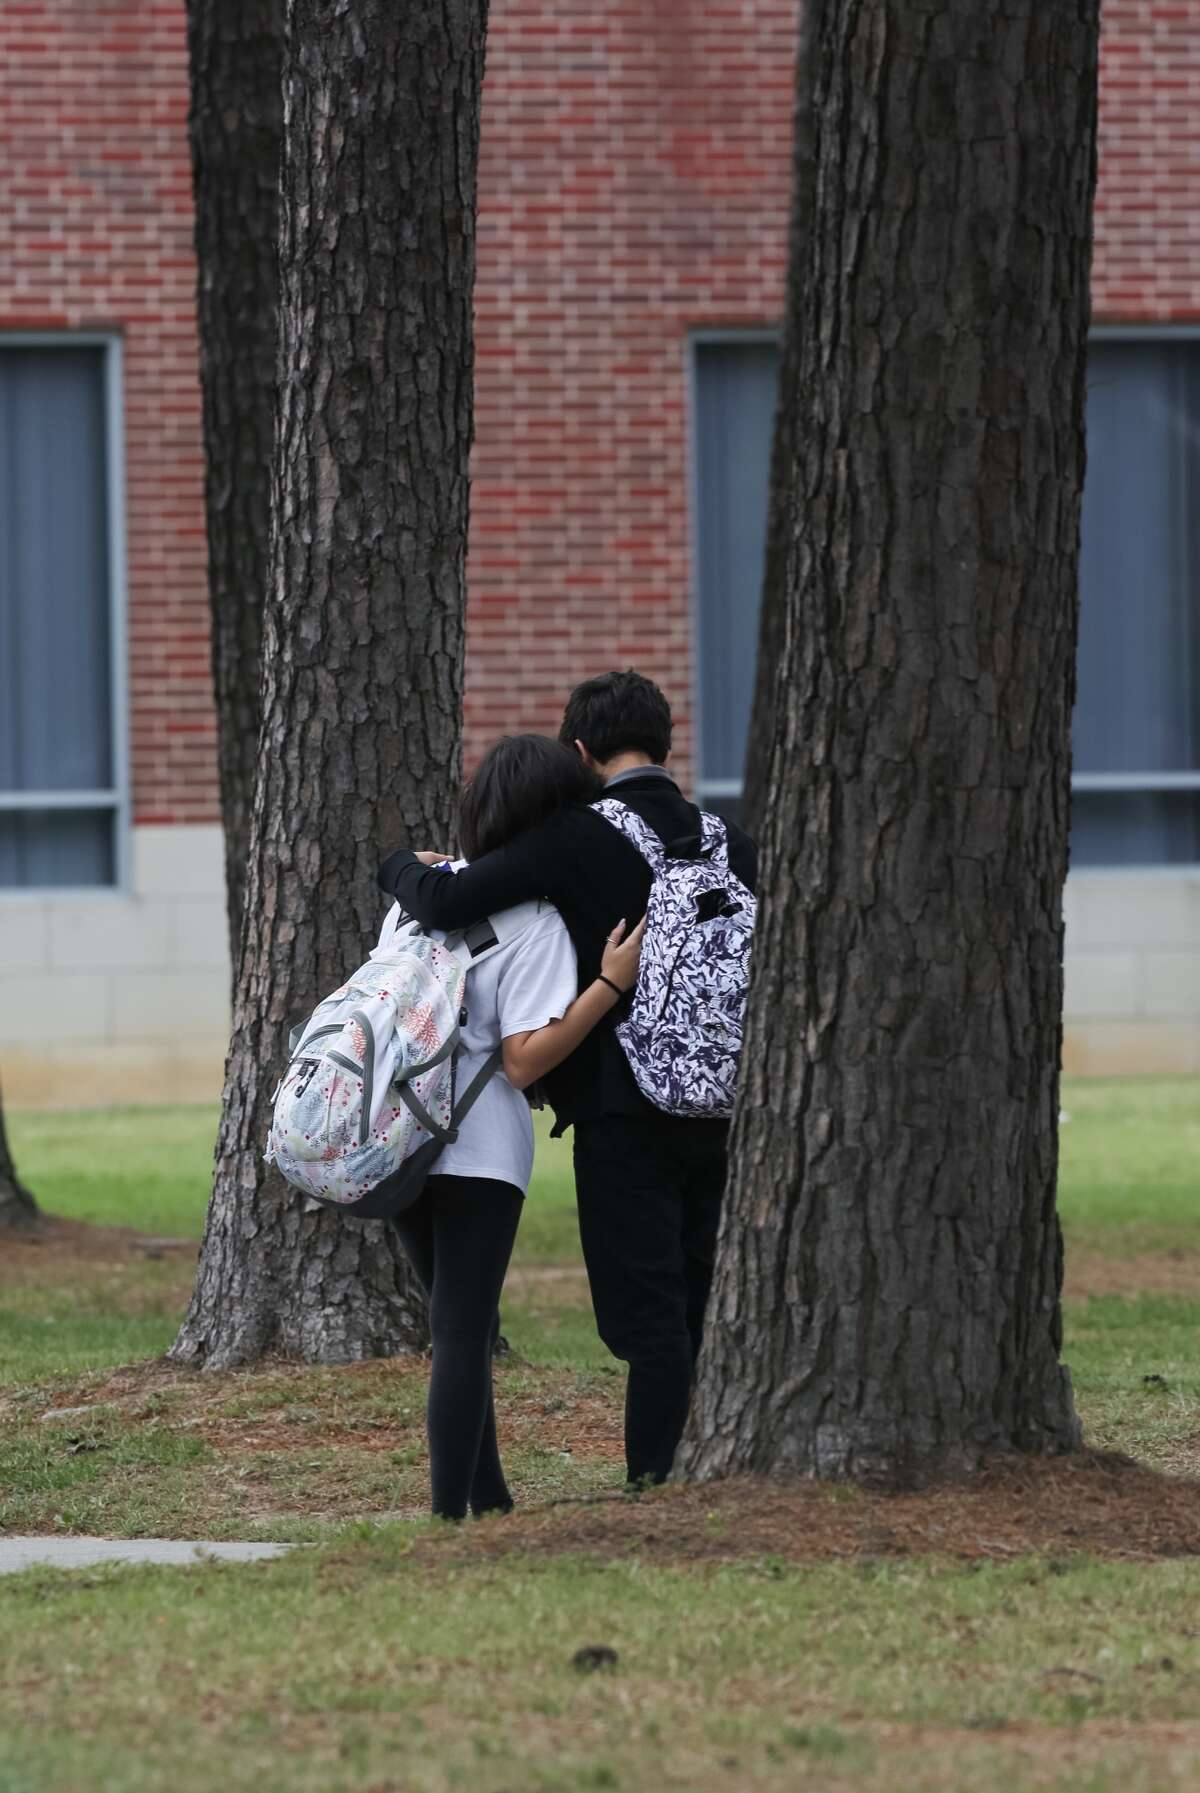 Two students embrace after classes let out at Klein Collins High School, Friday, April 1, in Spring. A 9th grade student fell from a second-story balcony around 12:40 p.m. and was transported by Life Flight to Memorial Hermann Hospital. ( Jon Shapley / Houston Chronicle )